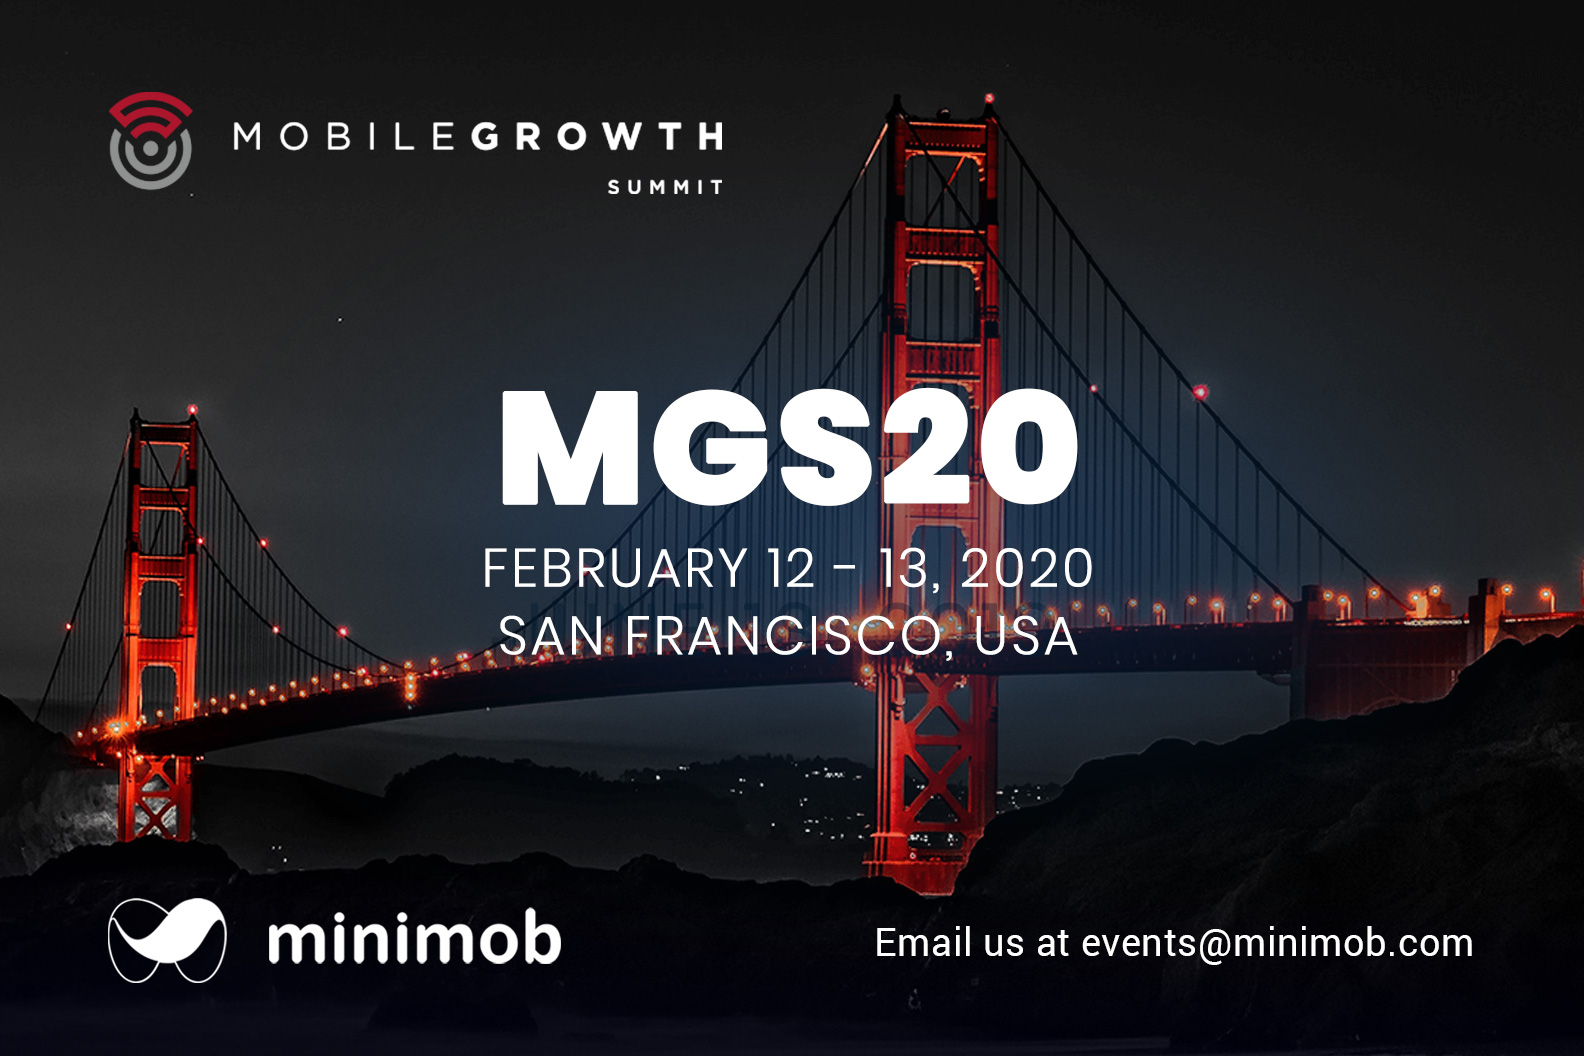 Minimob attends @Mobile Growth Summit, San Francisco USA